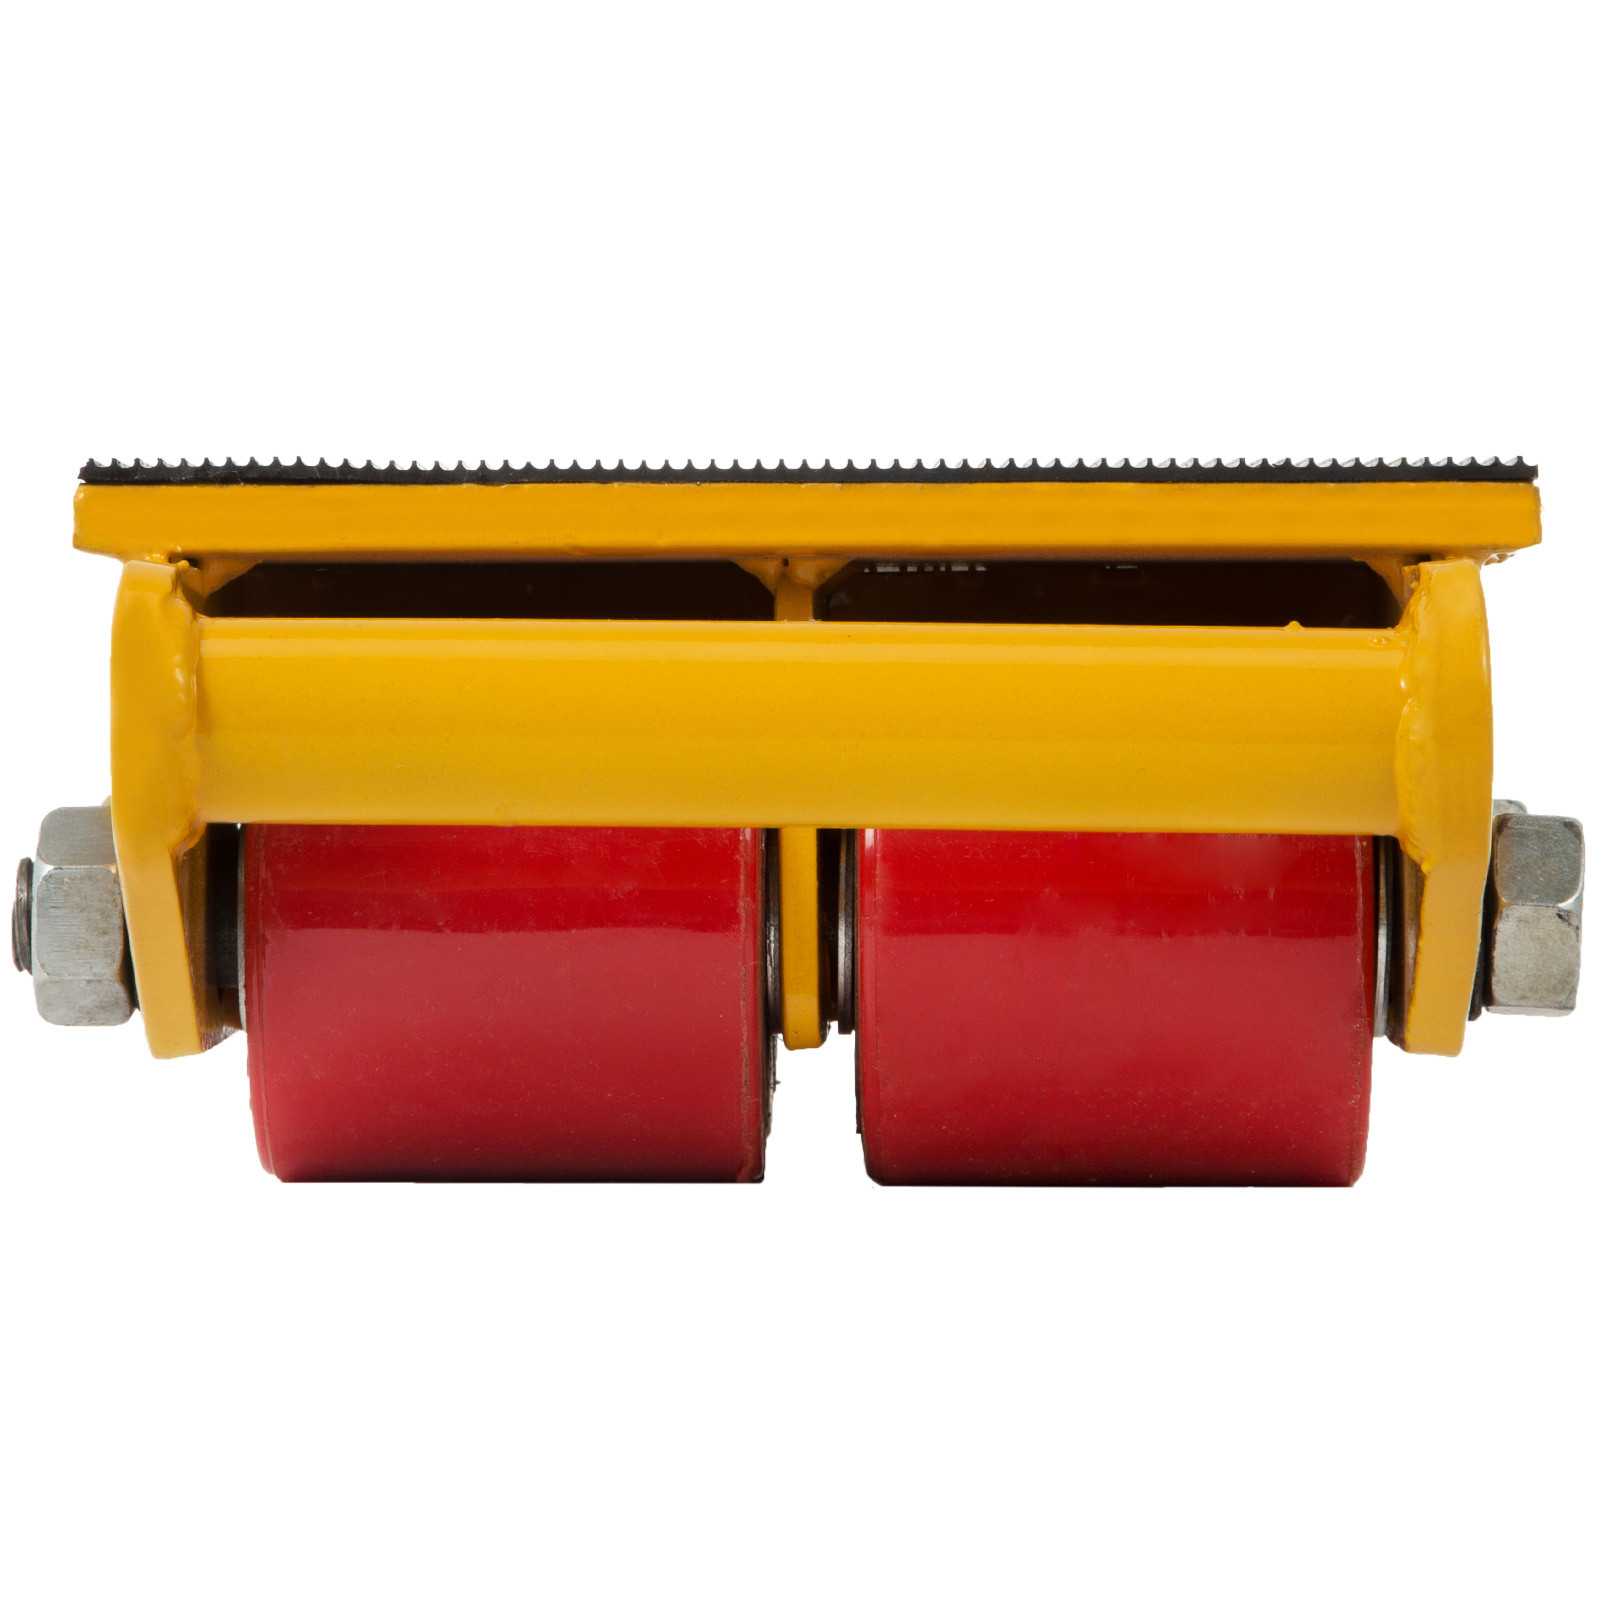 Machinery Mover Dolly Skate Roller Machinery Mover Rotating Roller Machine Skate